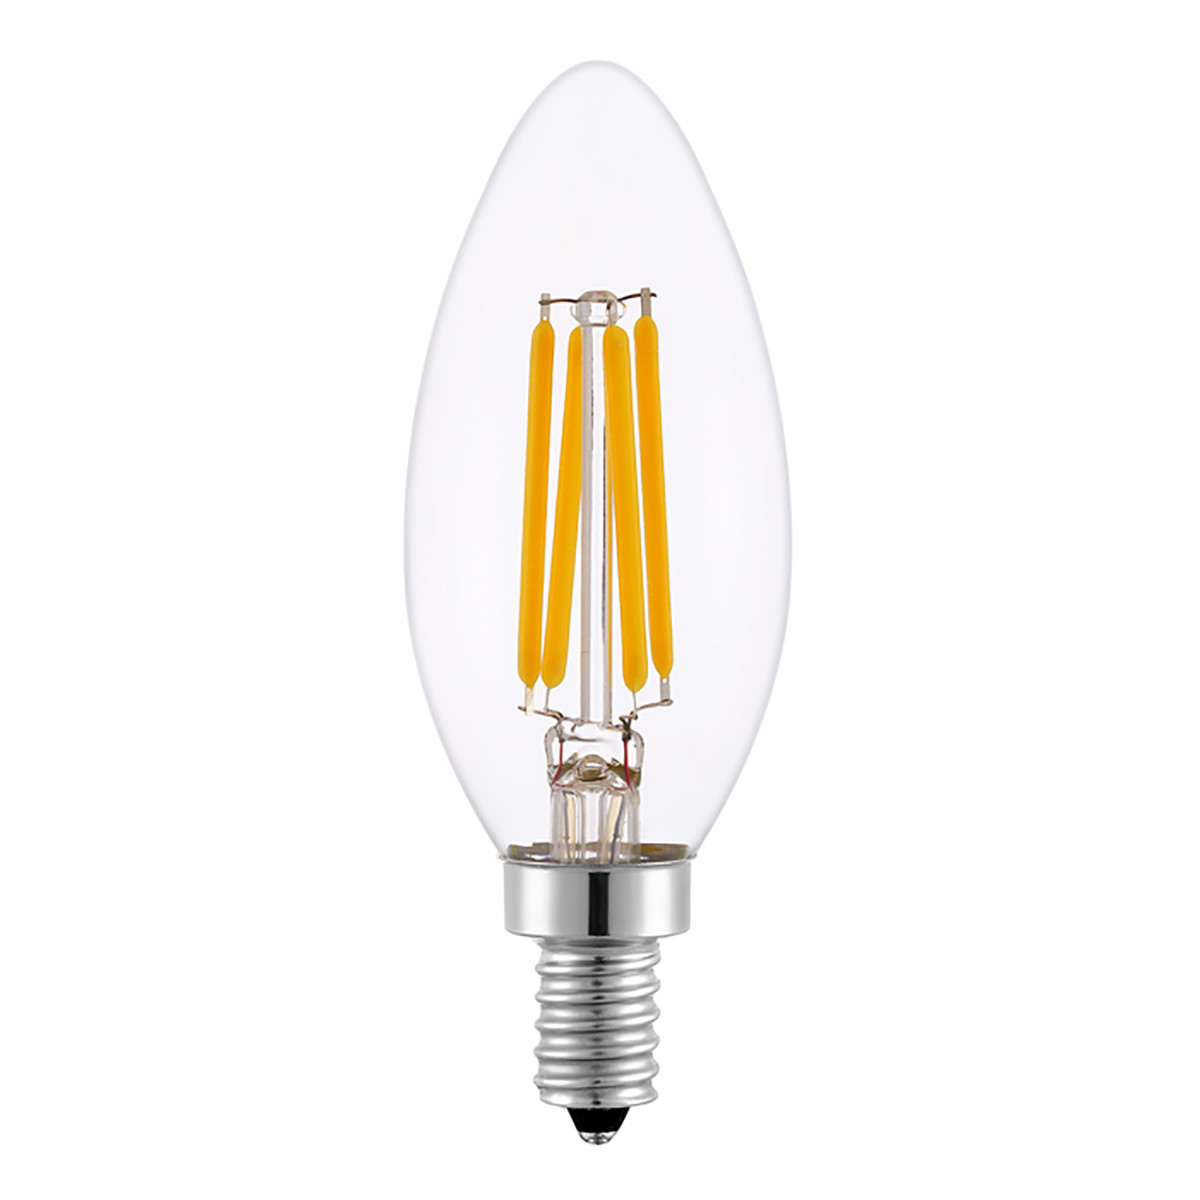 4W Filament LED Candle Light Bulb Light C35 Chandelier Bulb with E14 Base 40W Equivalent Halogen Replacement